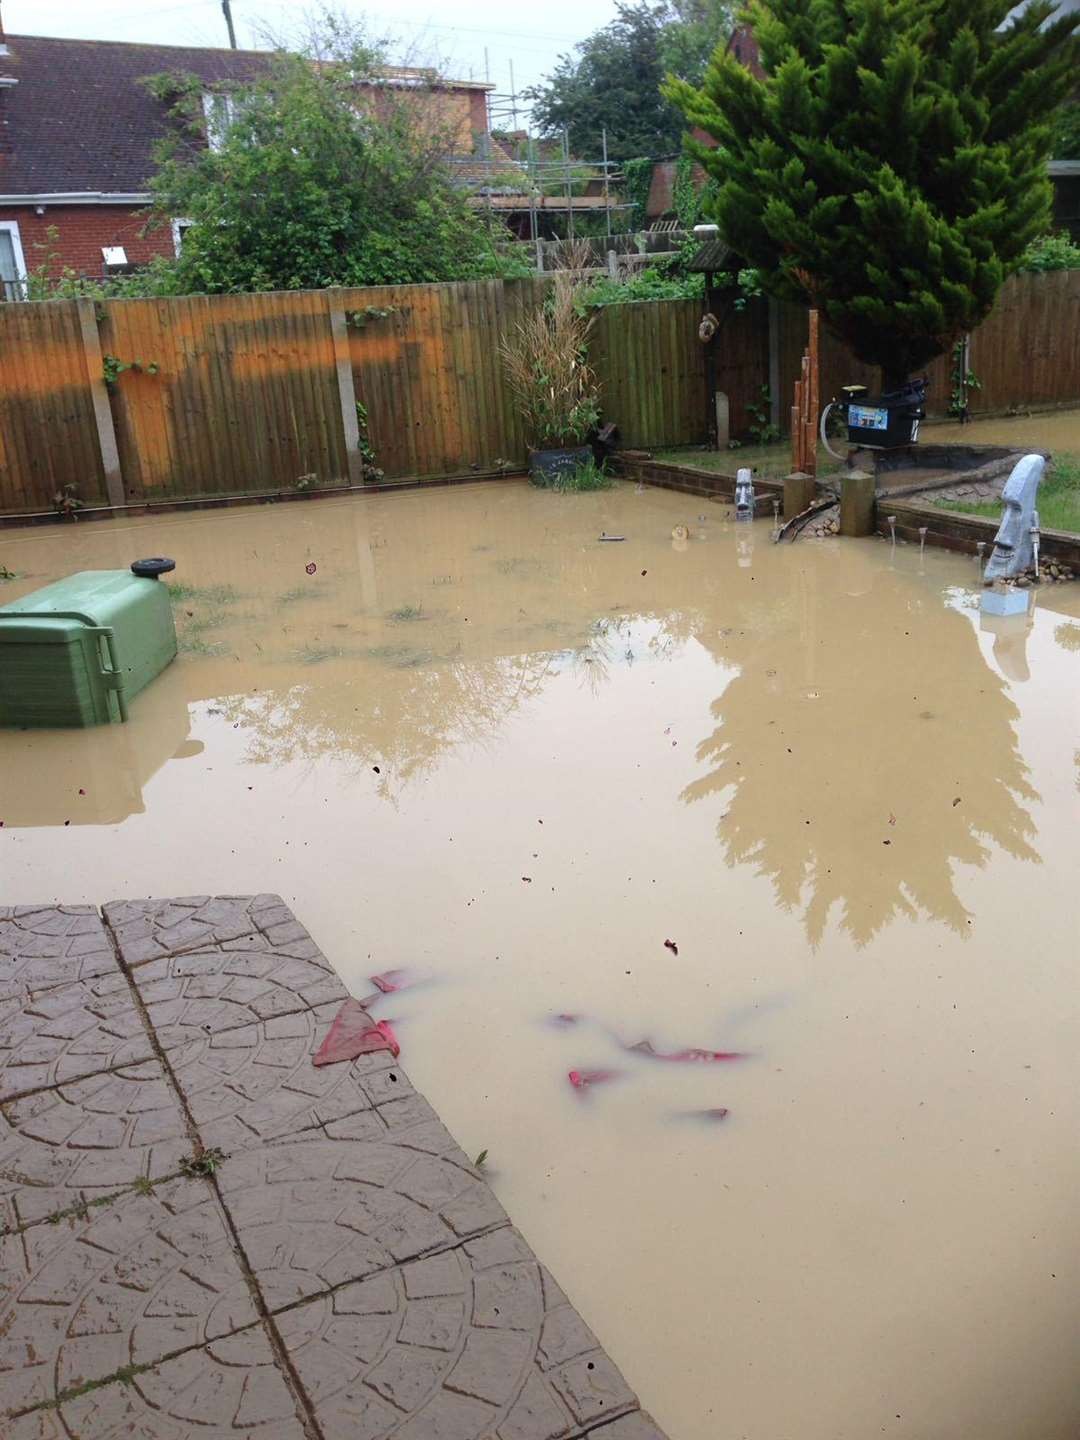 Sean Maxwell's garden in Sheerstone, Iwade, was flooded when a stream burst its banks